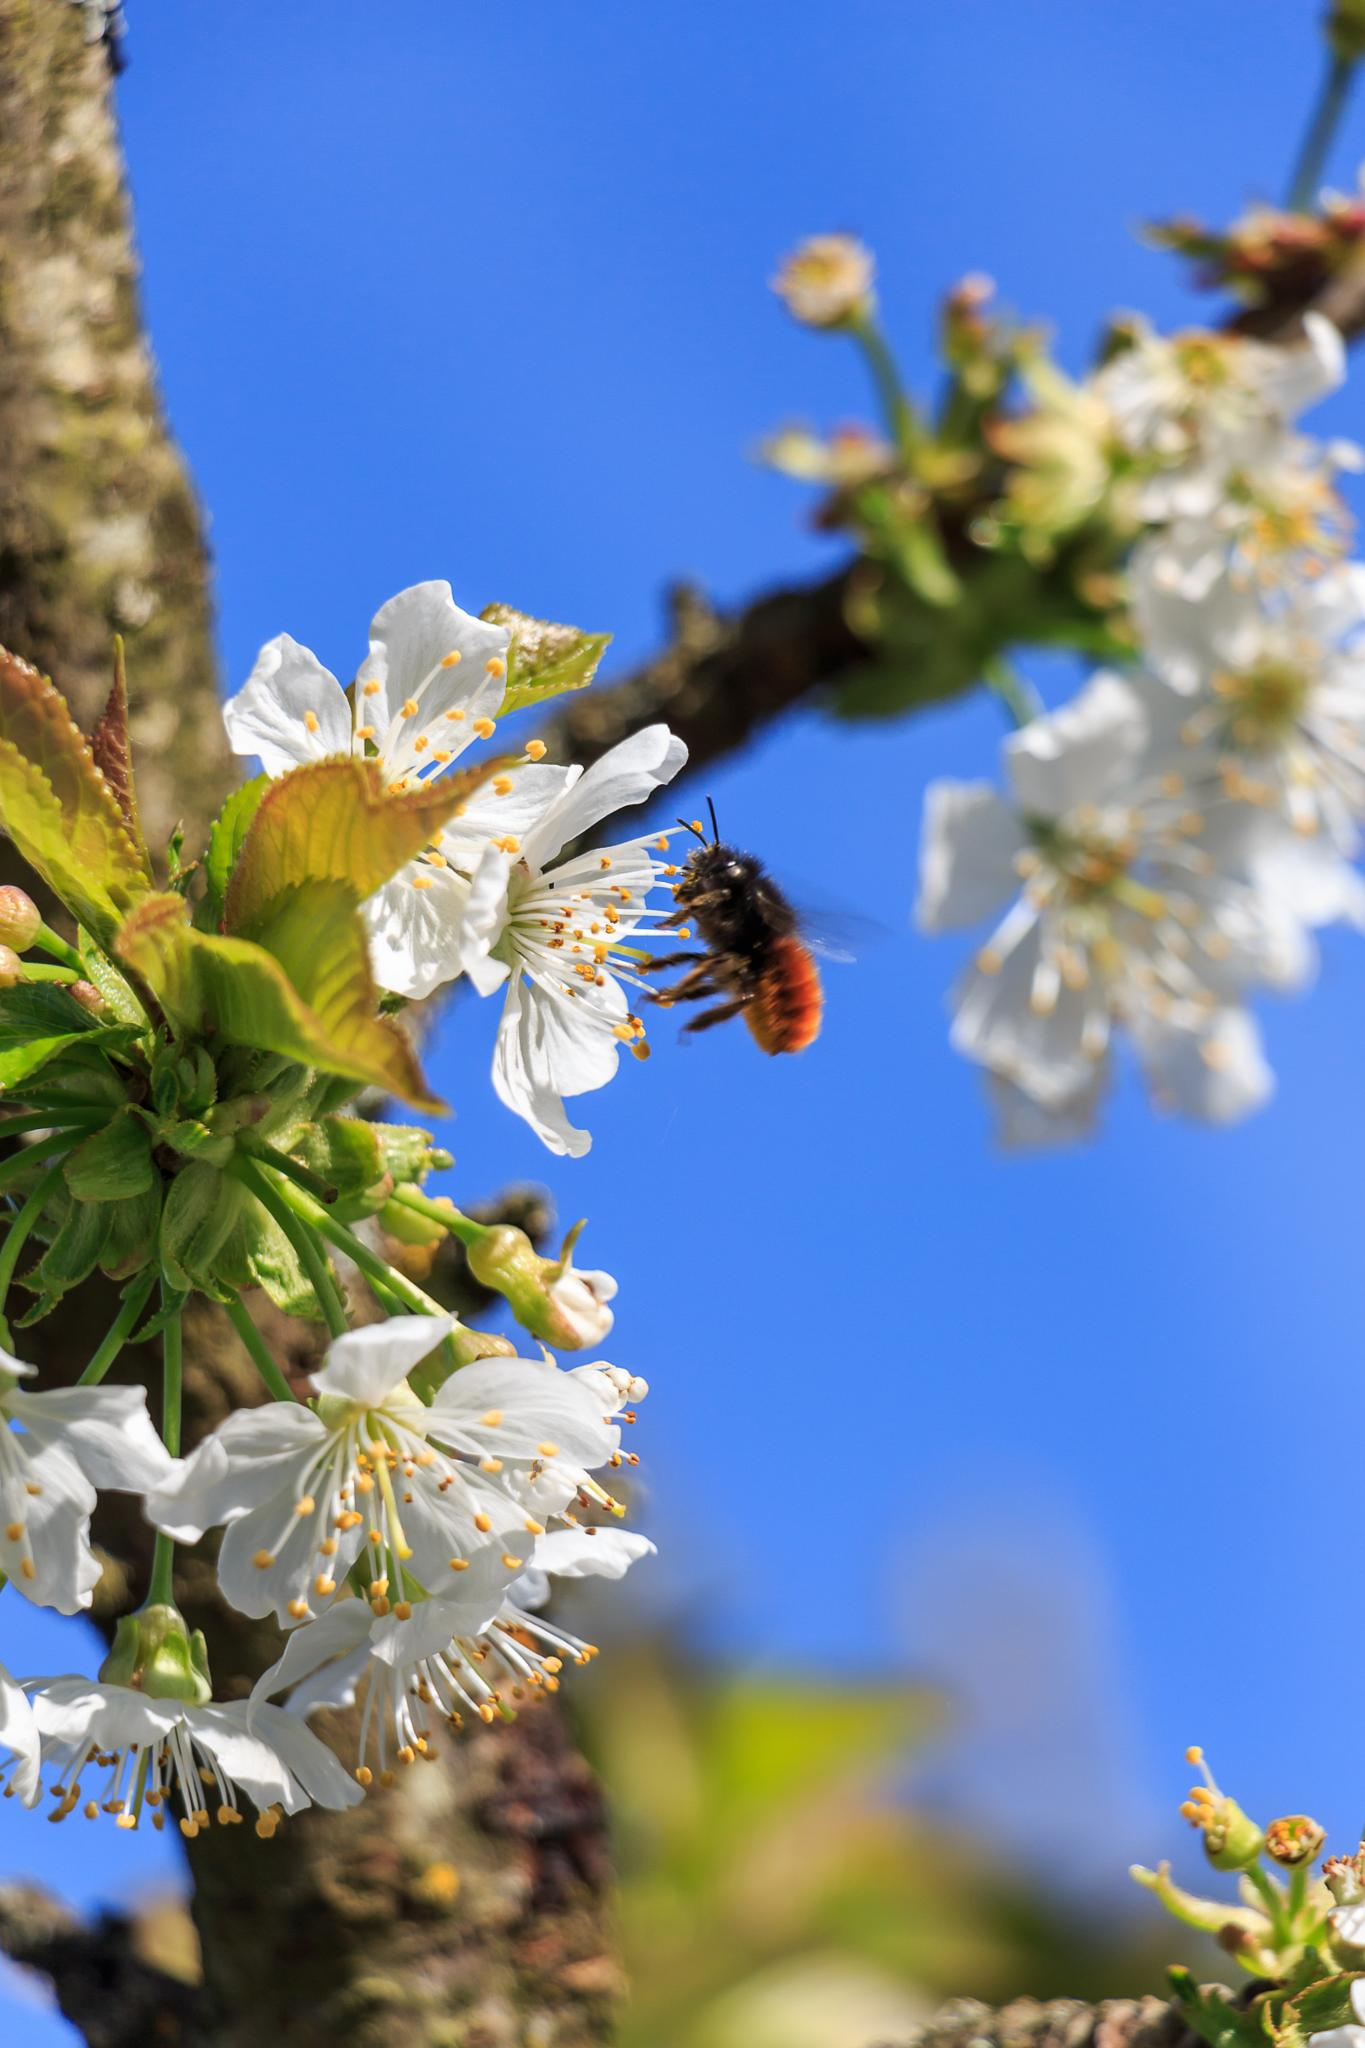 Busy buzz by Laurent Adien